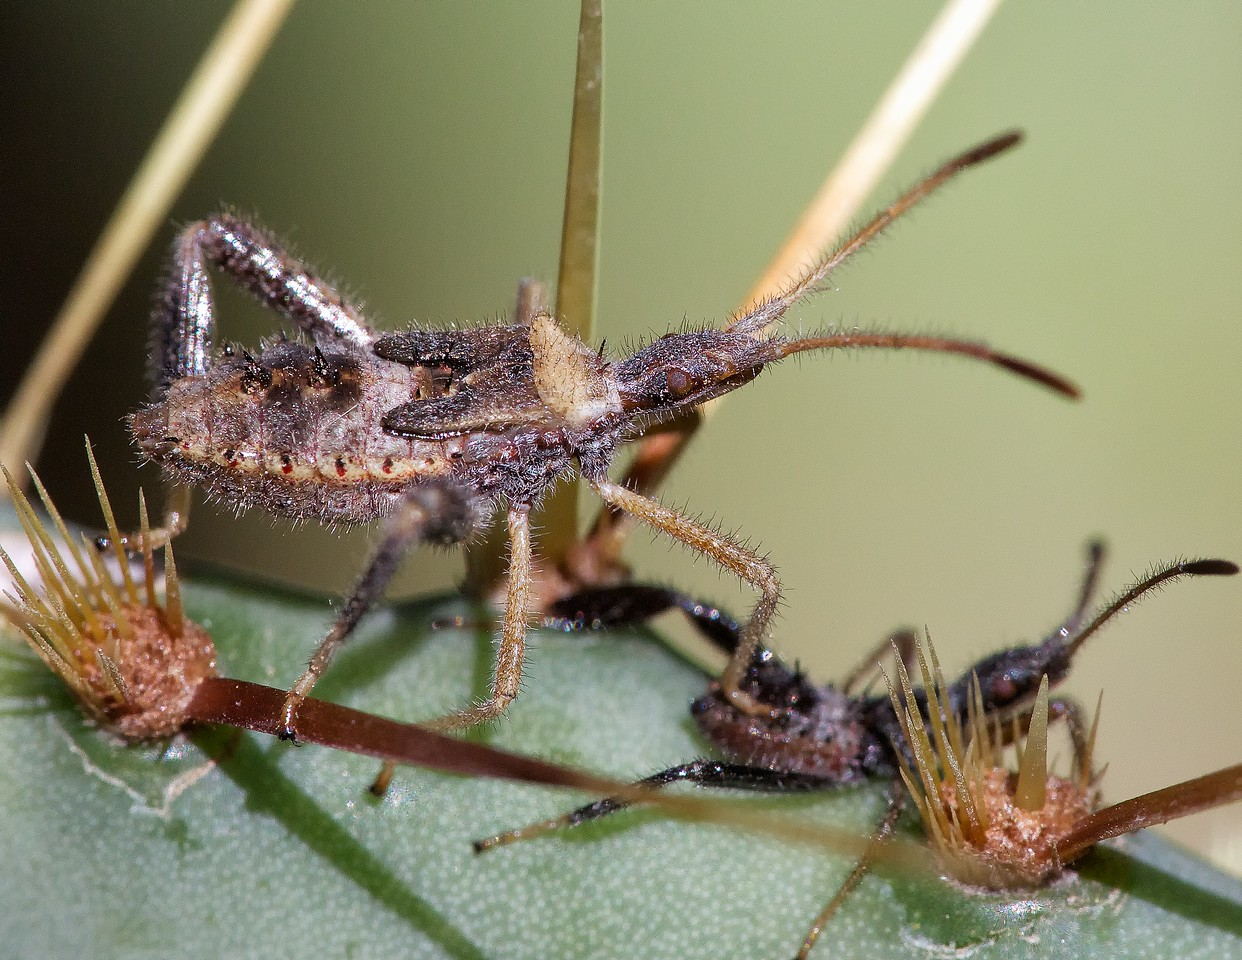 reduviid and cactus coreid